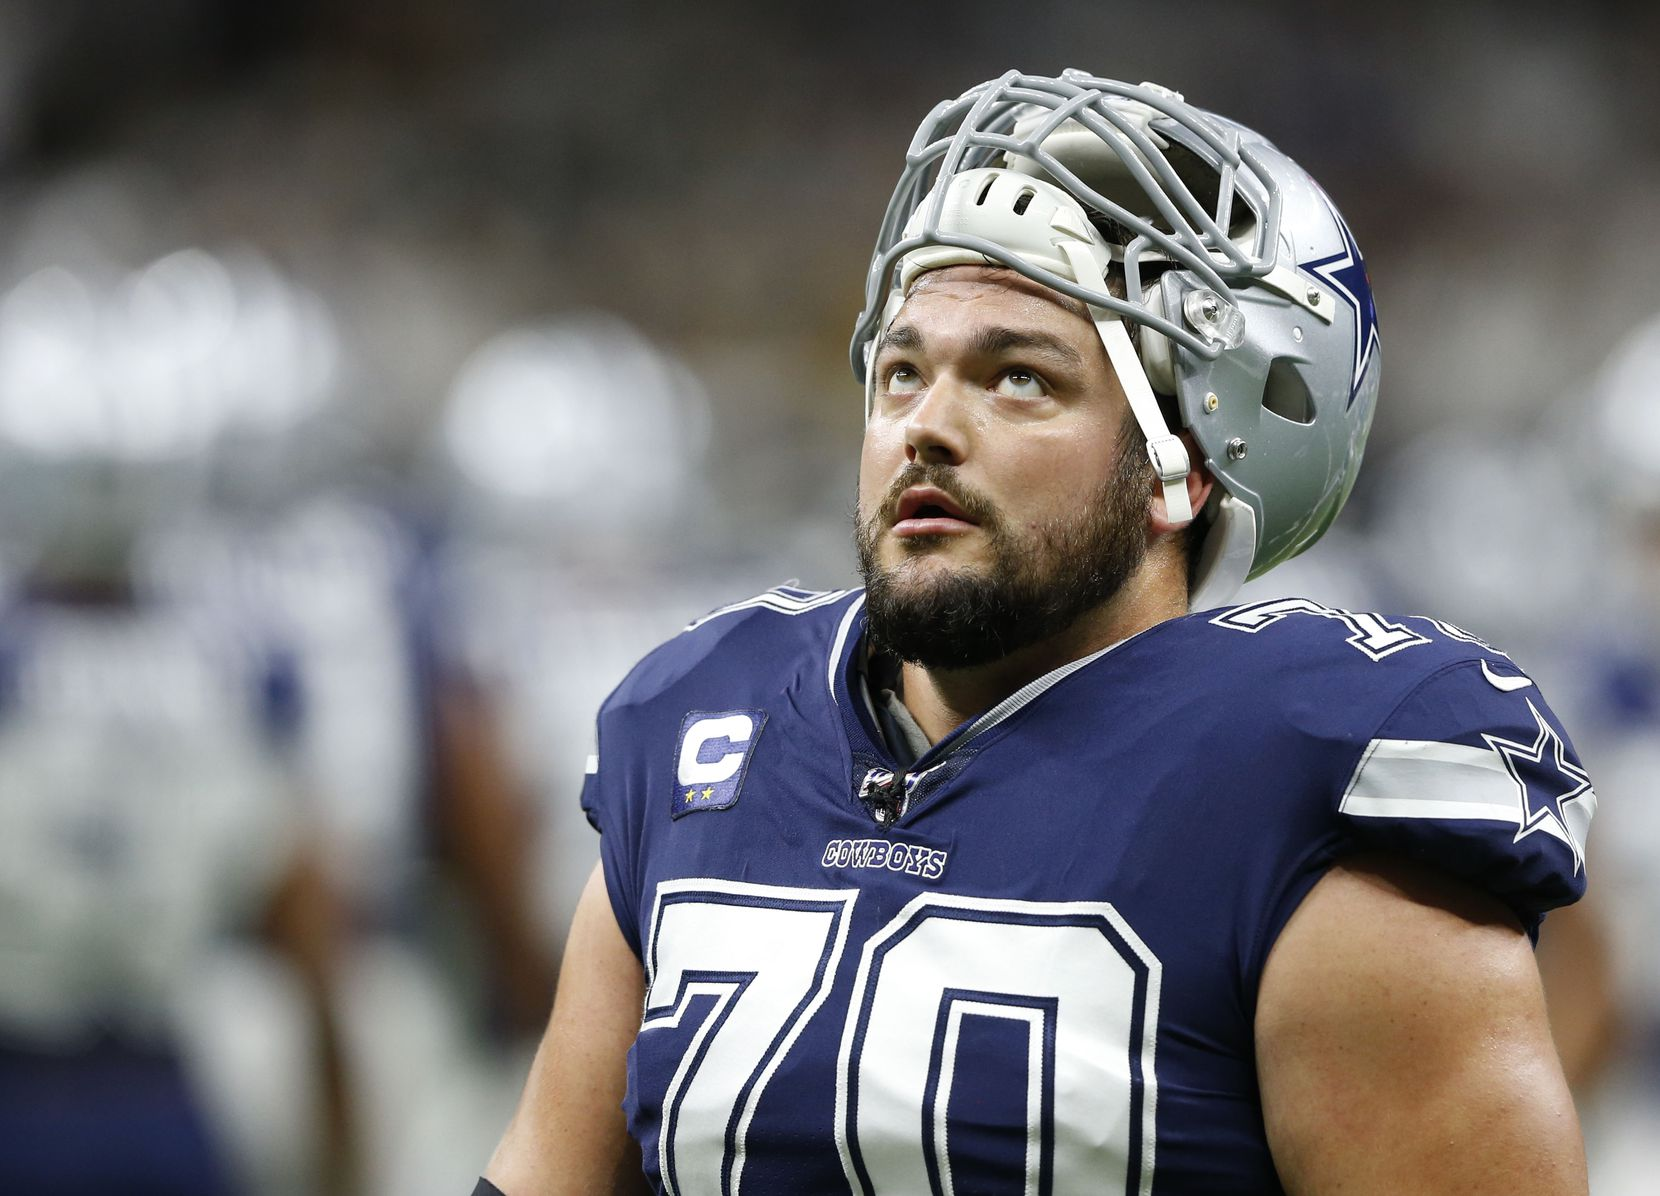 Dallas Cowboys offensive guard Zack Martin (70) looks up as he exits the field after warmups before a game against the New Orleans Saints at the Superdome in New Orleans, Louisiana on Sunday, September 29, 2019.